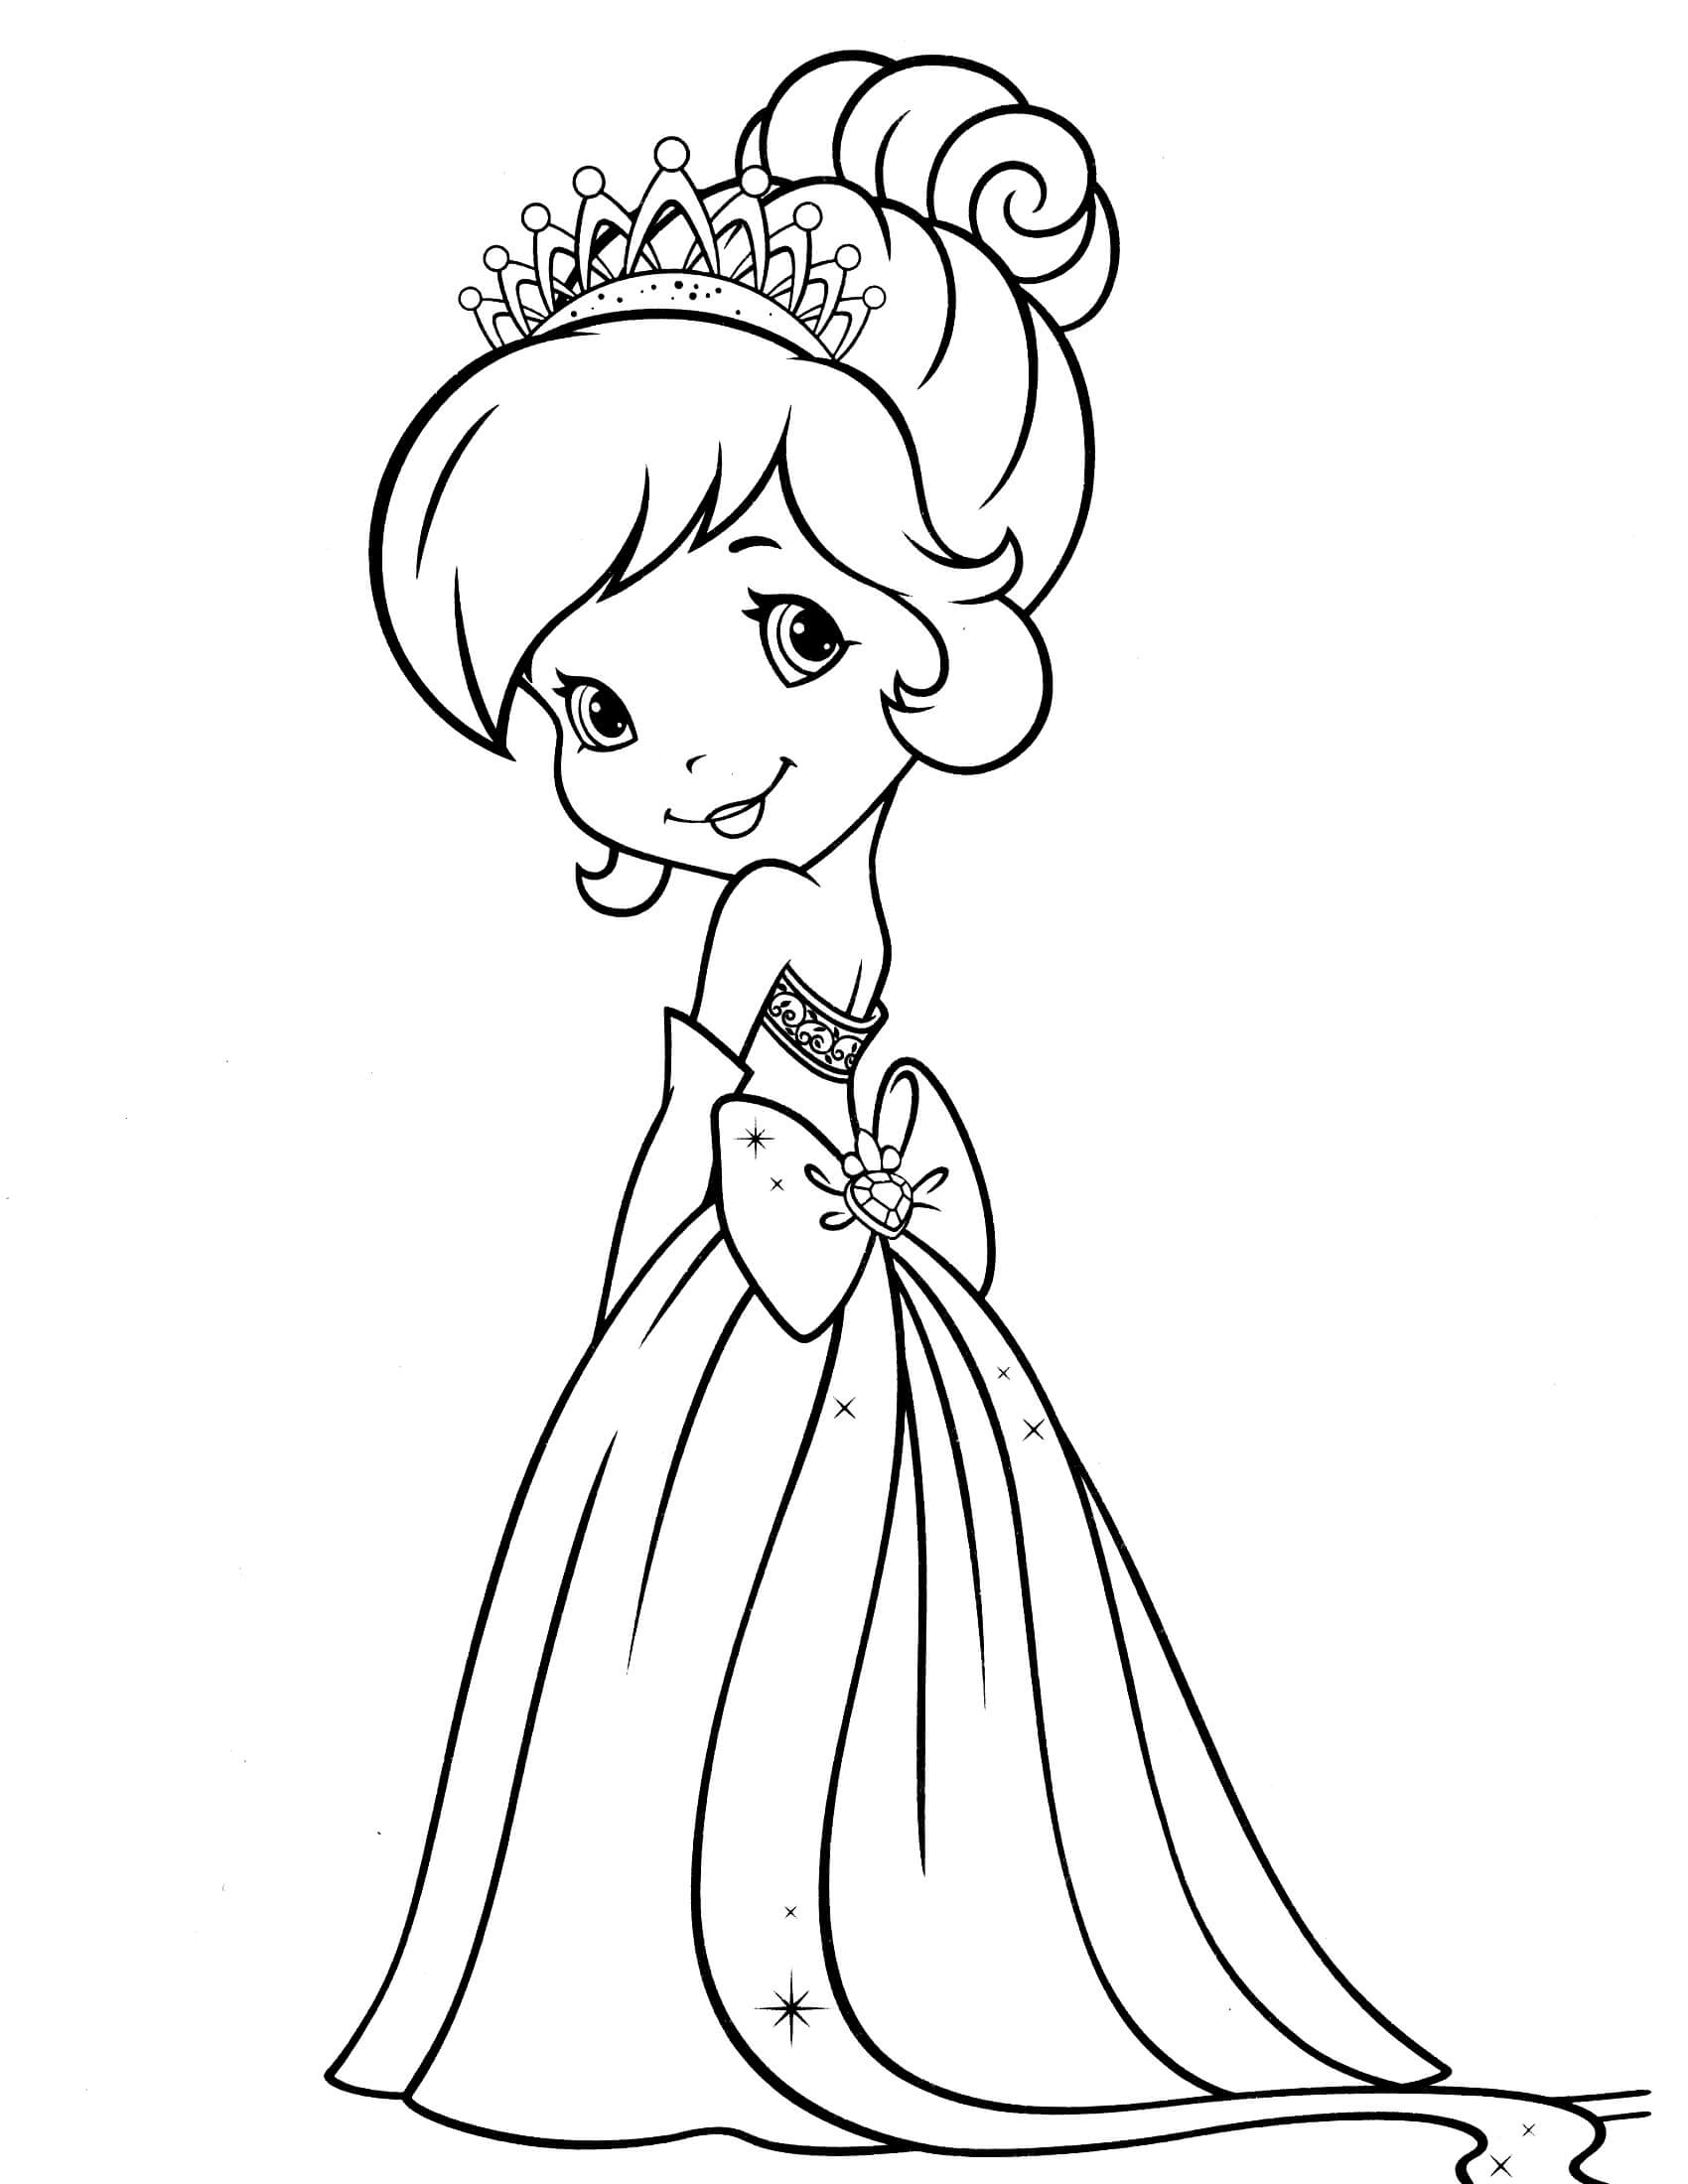 strawberry shortcake princess coloring pages strawberry shortcake printables strawberry shortcake princess strawberry shortcake pages coloring